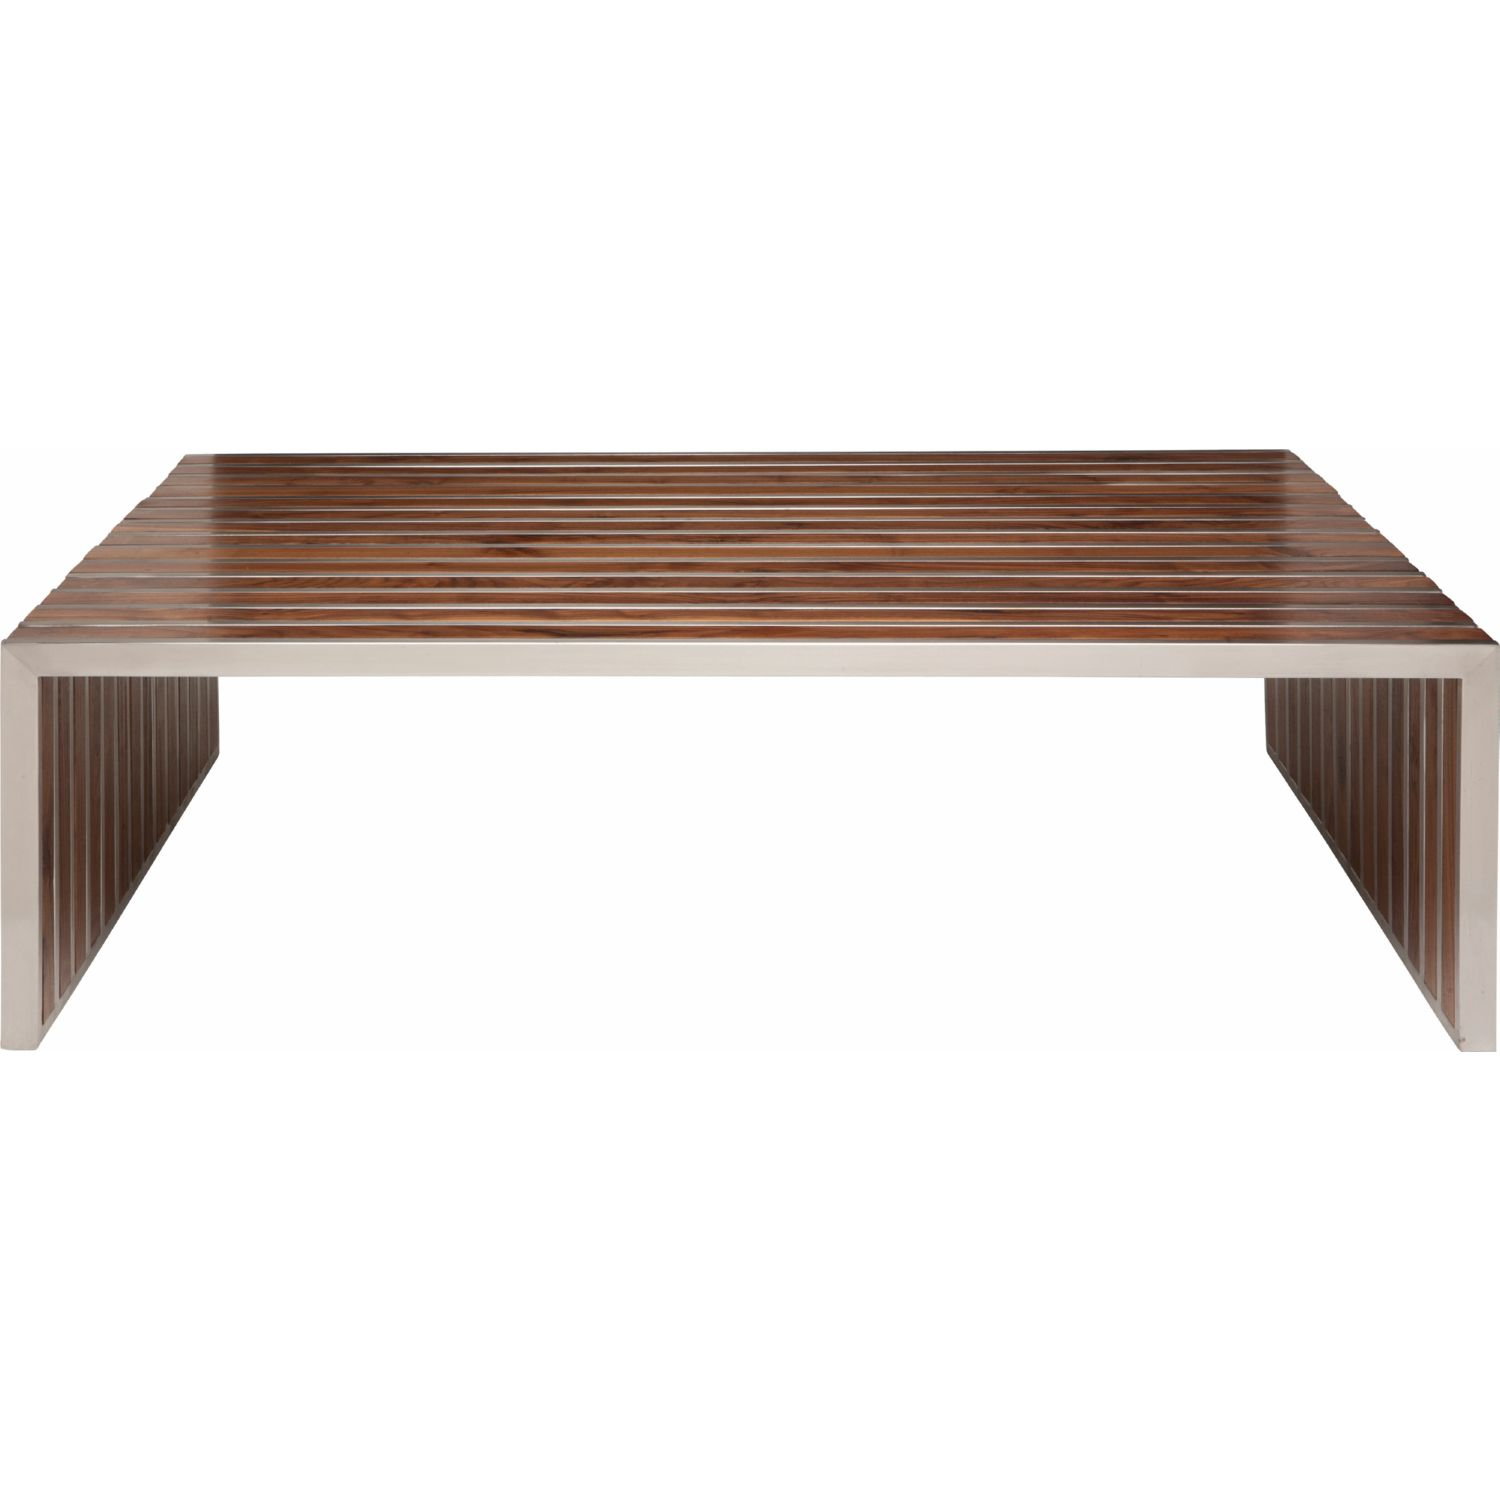 Nuevo Modern Furniture HGEM706 American Amici Coffee Table in